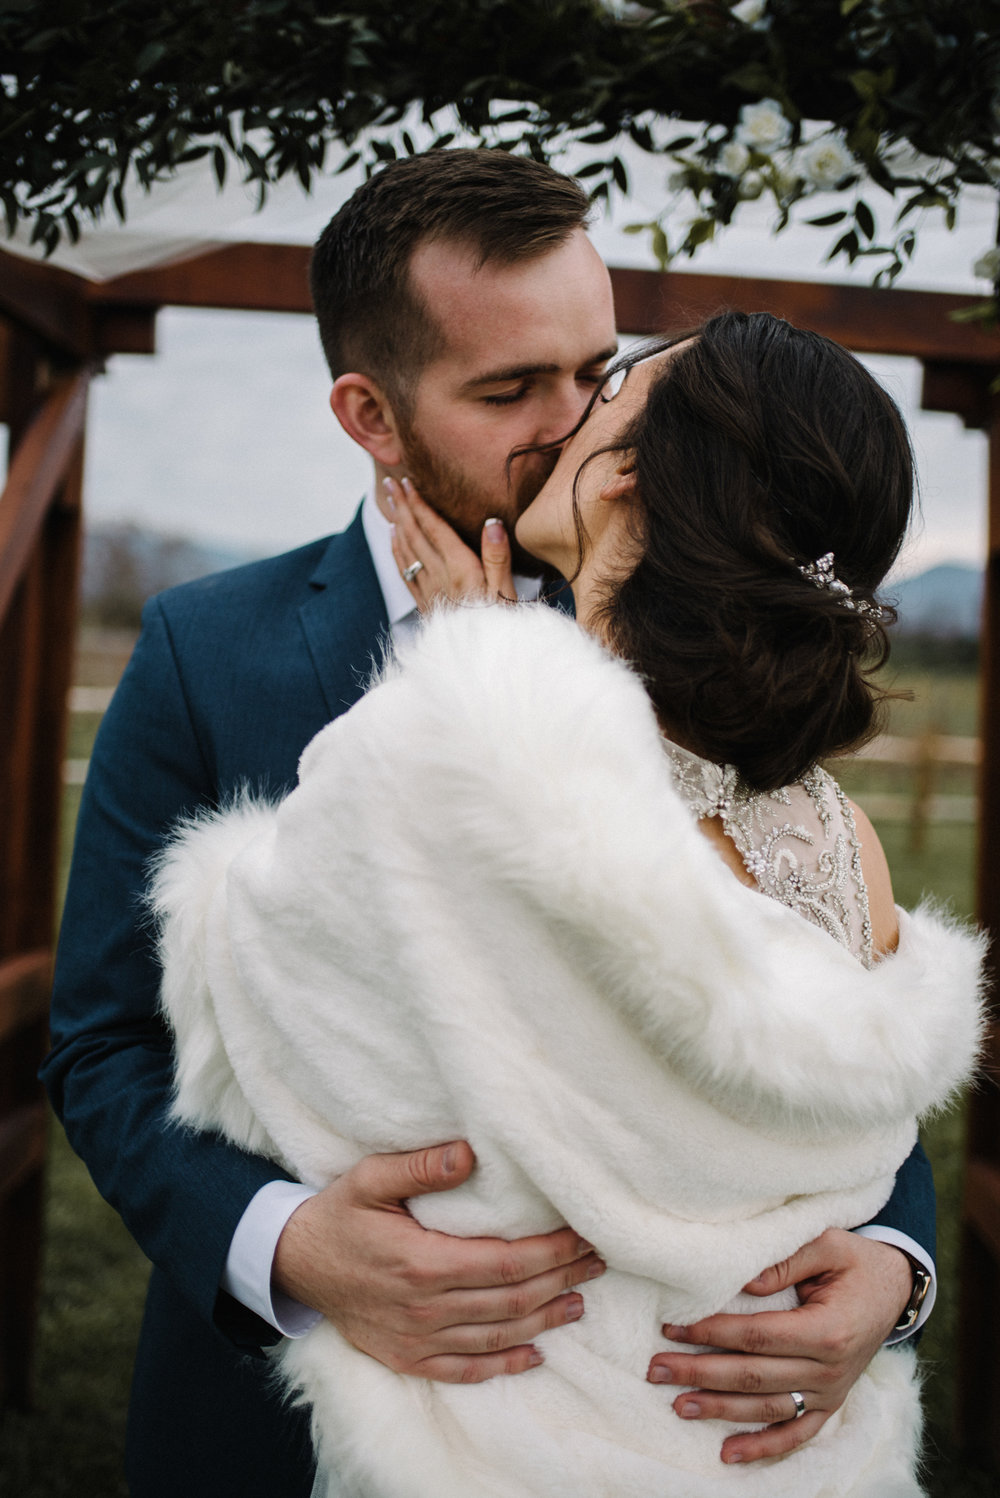 Alyssa and Jesse Winter Vineyard Wedding Luray Virginia Shenandoah Valley Faithbrooke_65.JPG